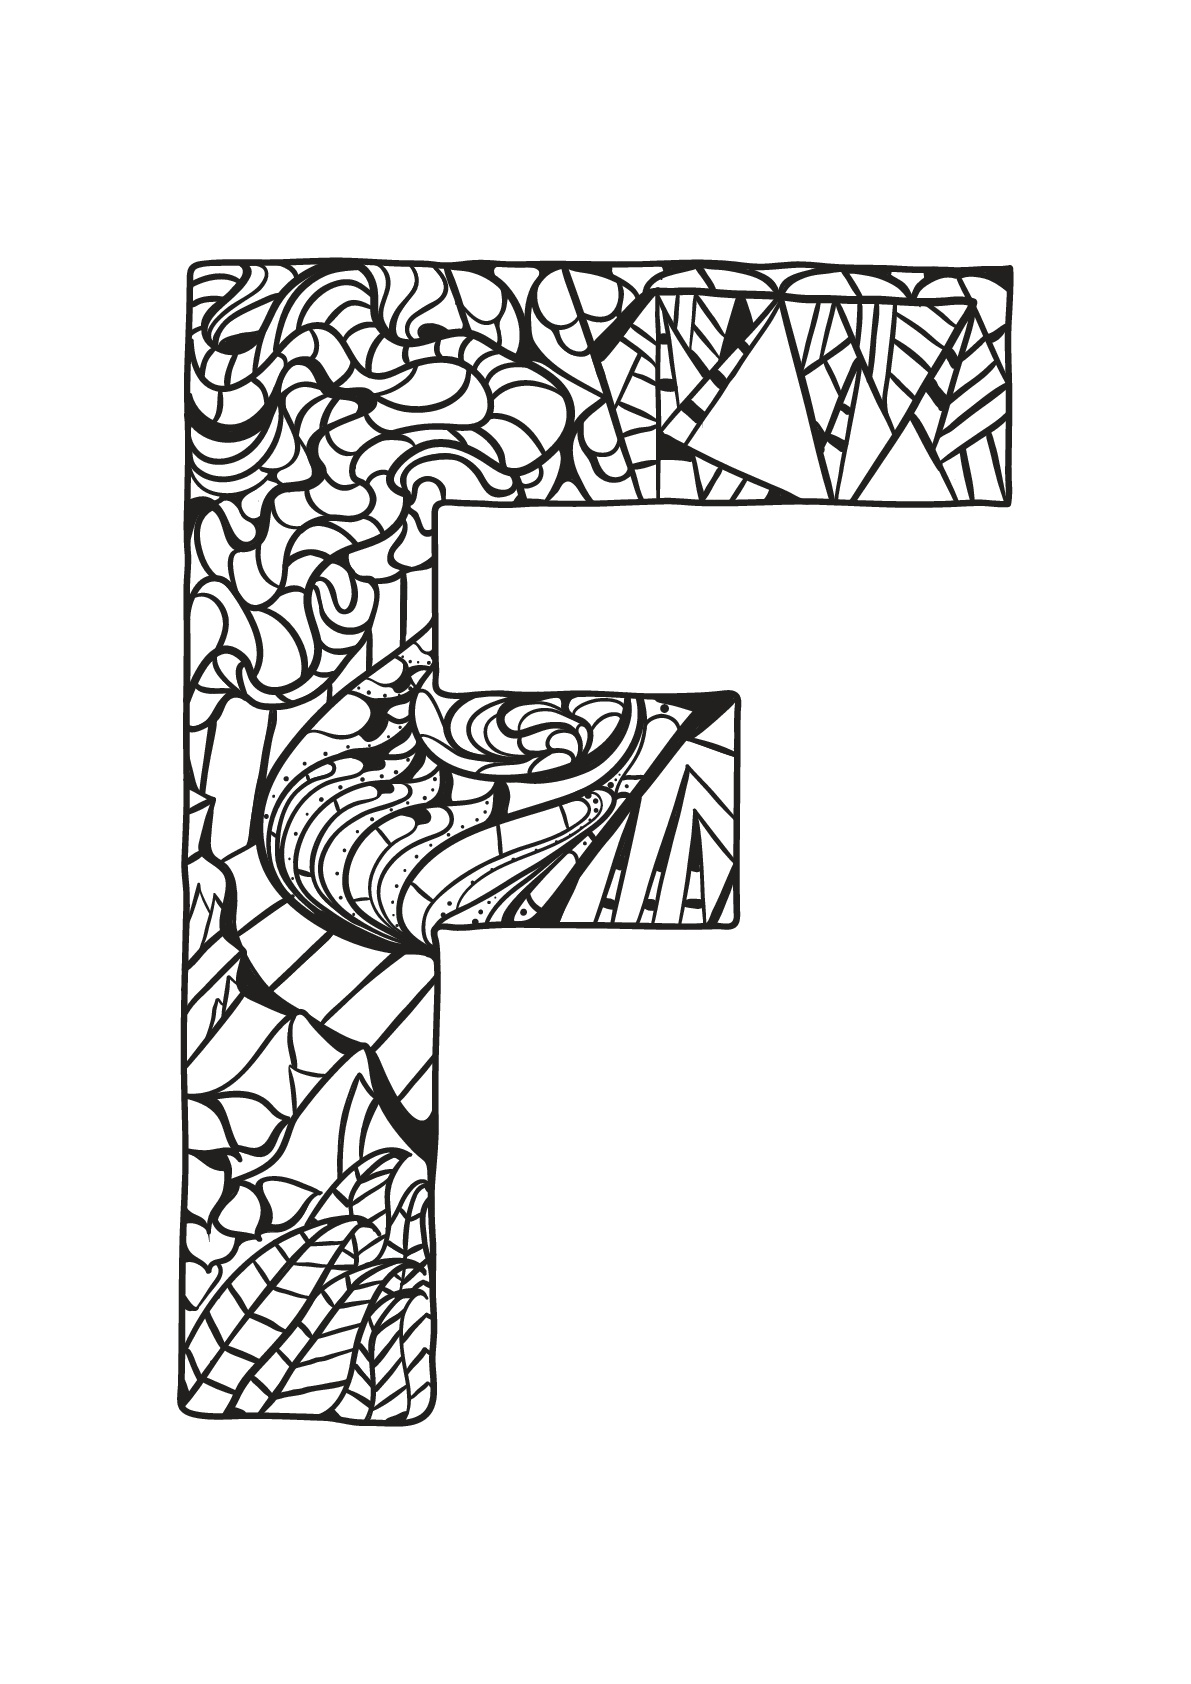 Alphabet coloring page with few details for kids : F